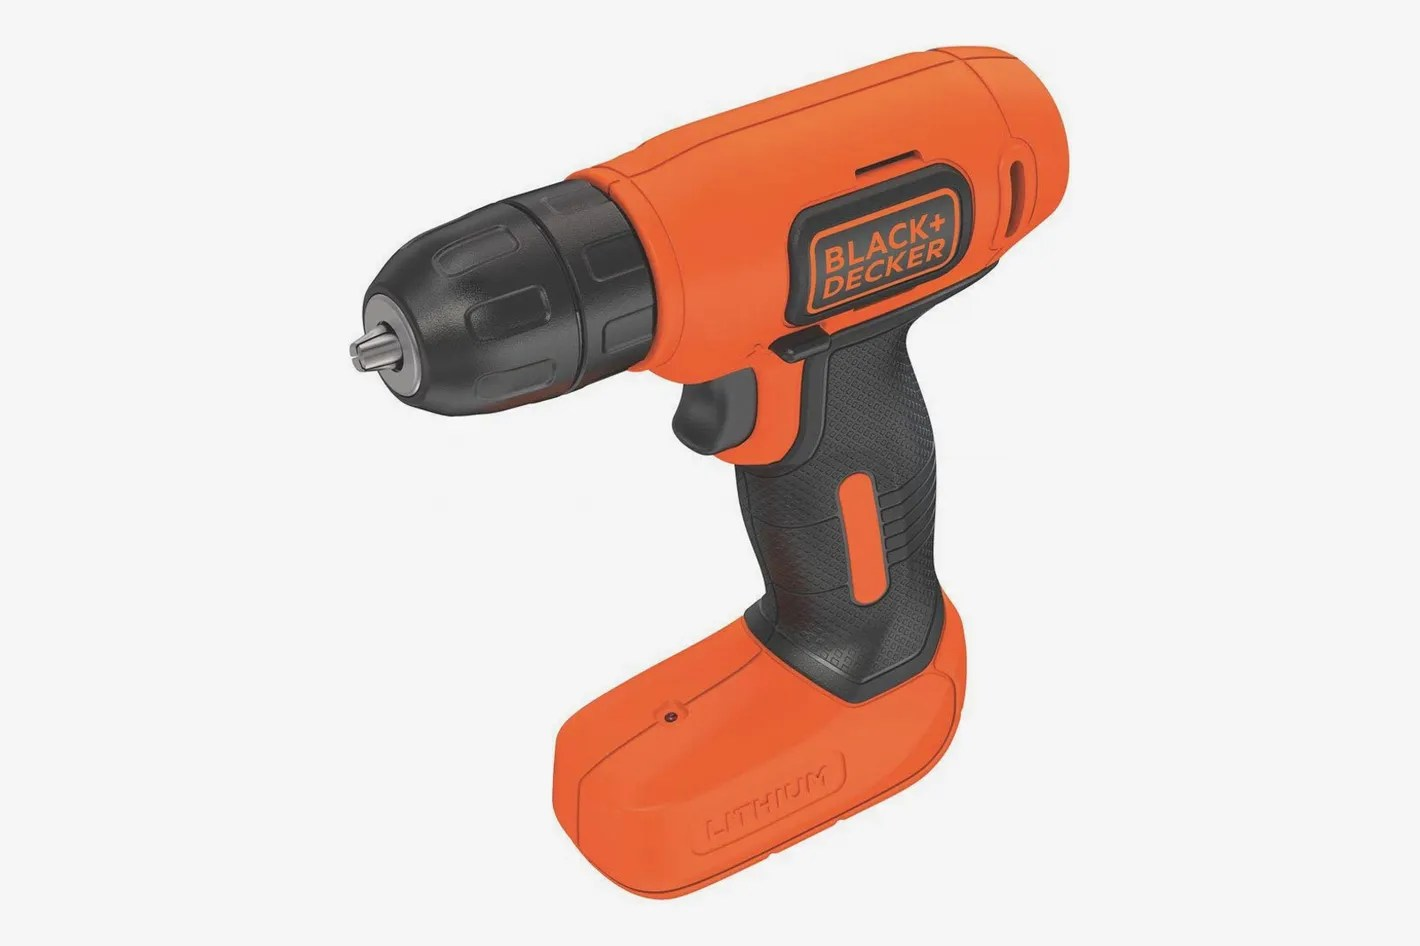 How To Use Black And Decker Drill